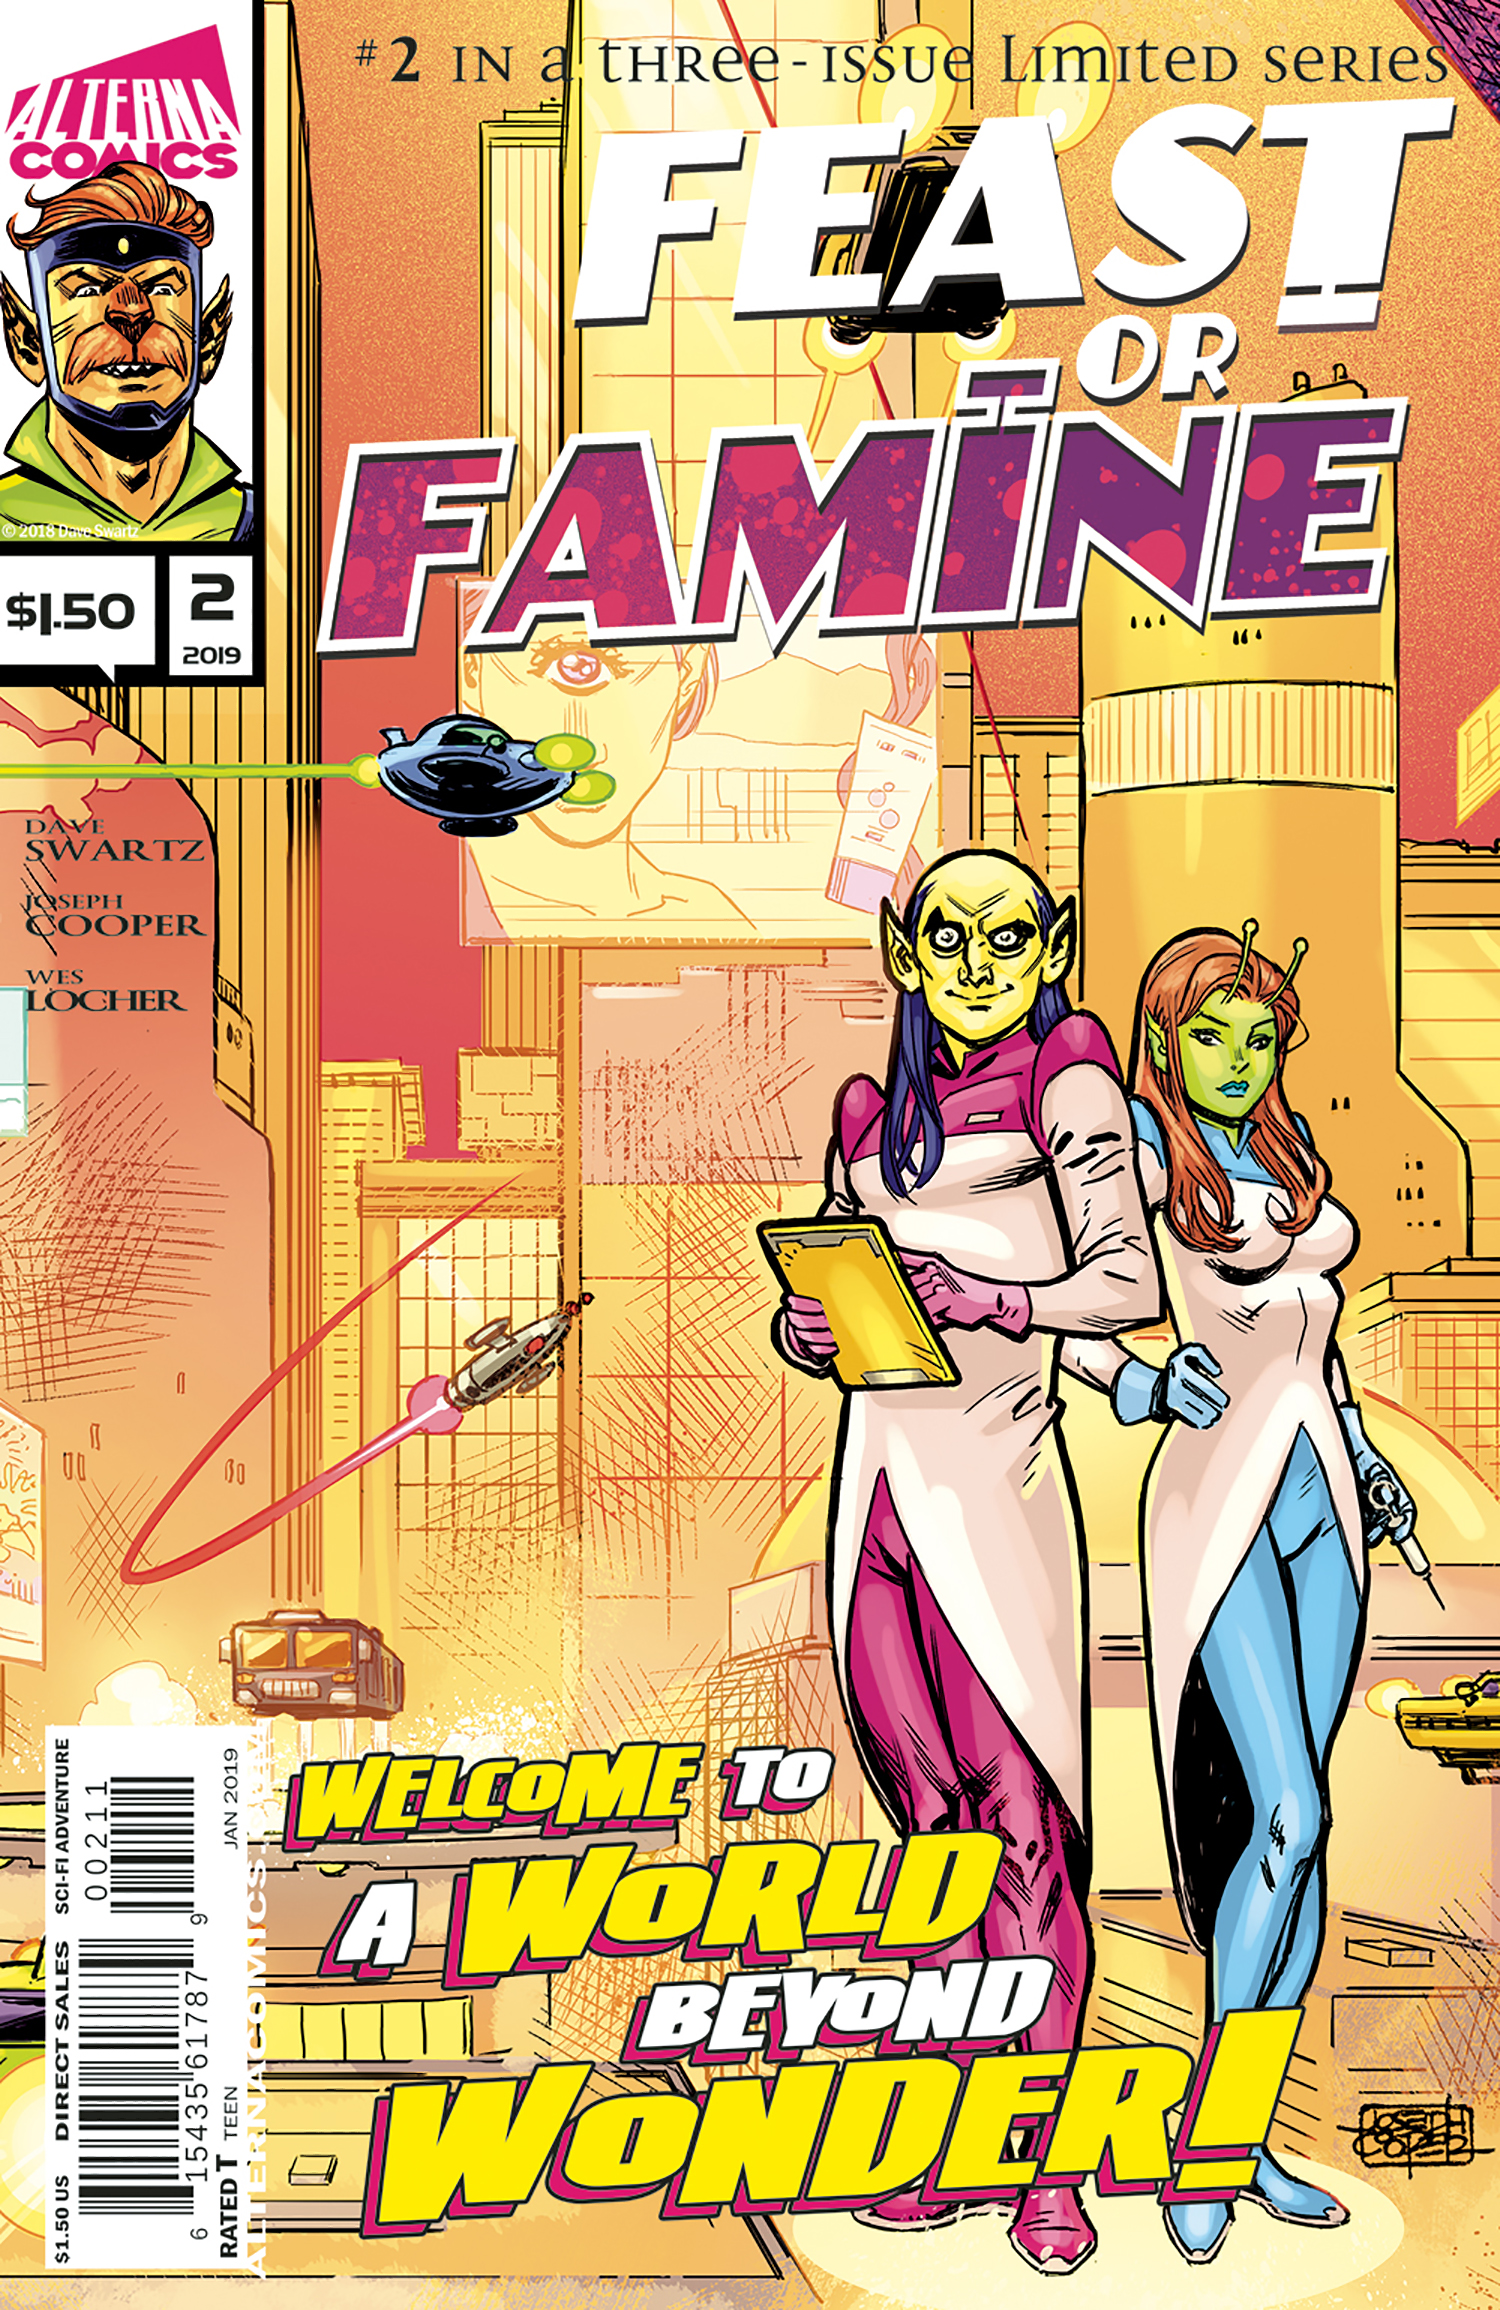 FEAST OR FAMINE #2 - Feast or Famine Comic Book